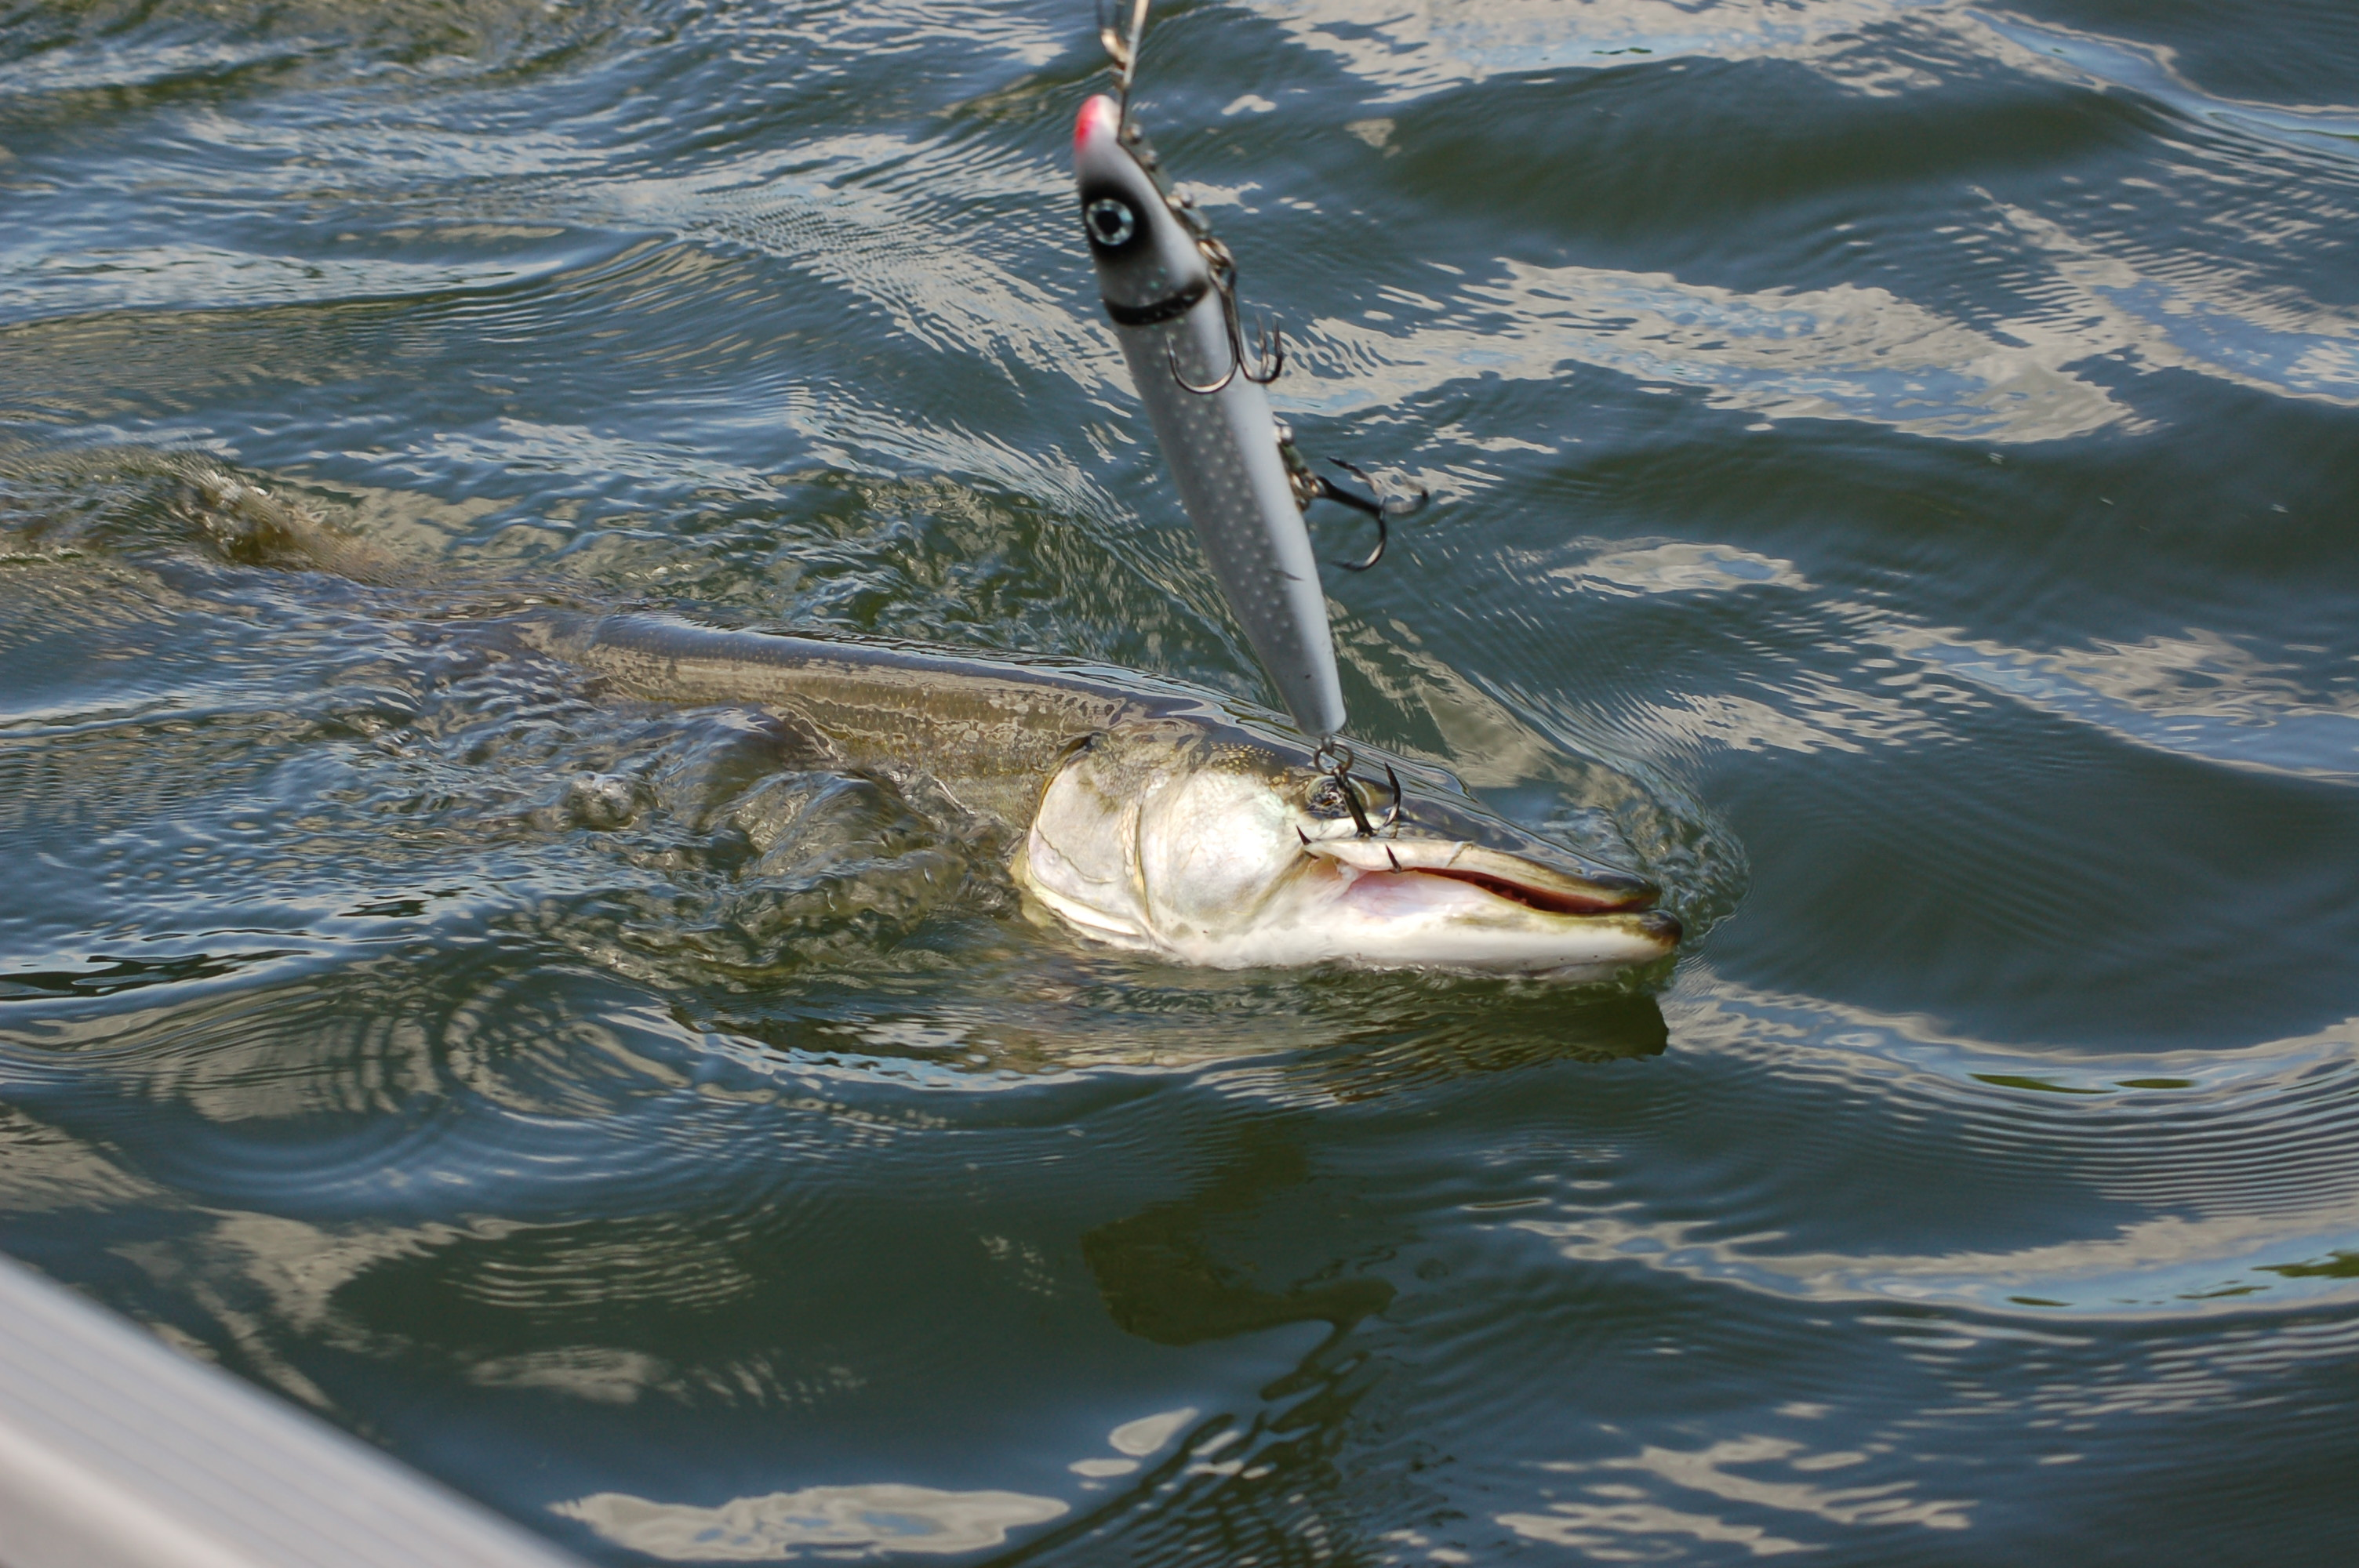 Muskie fishing larry a smail 39 s blog for Muskie fish pictures